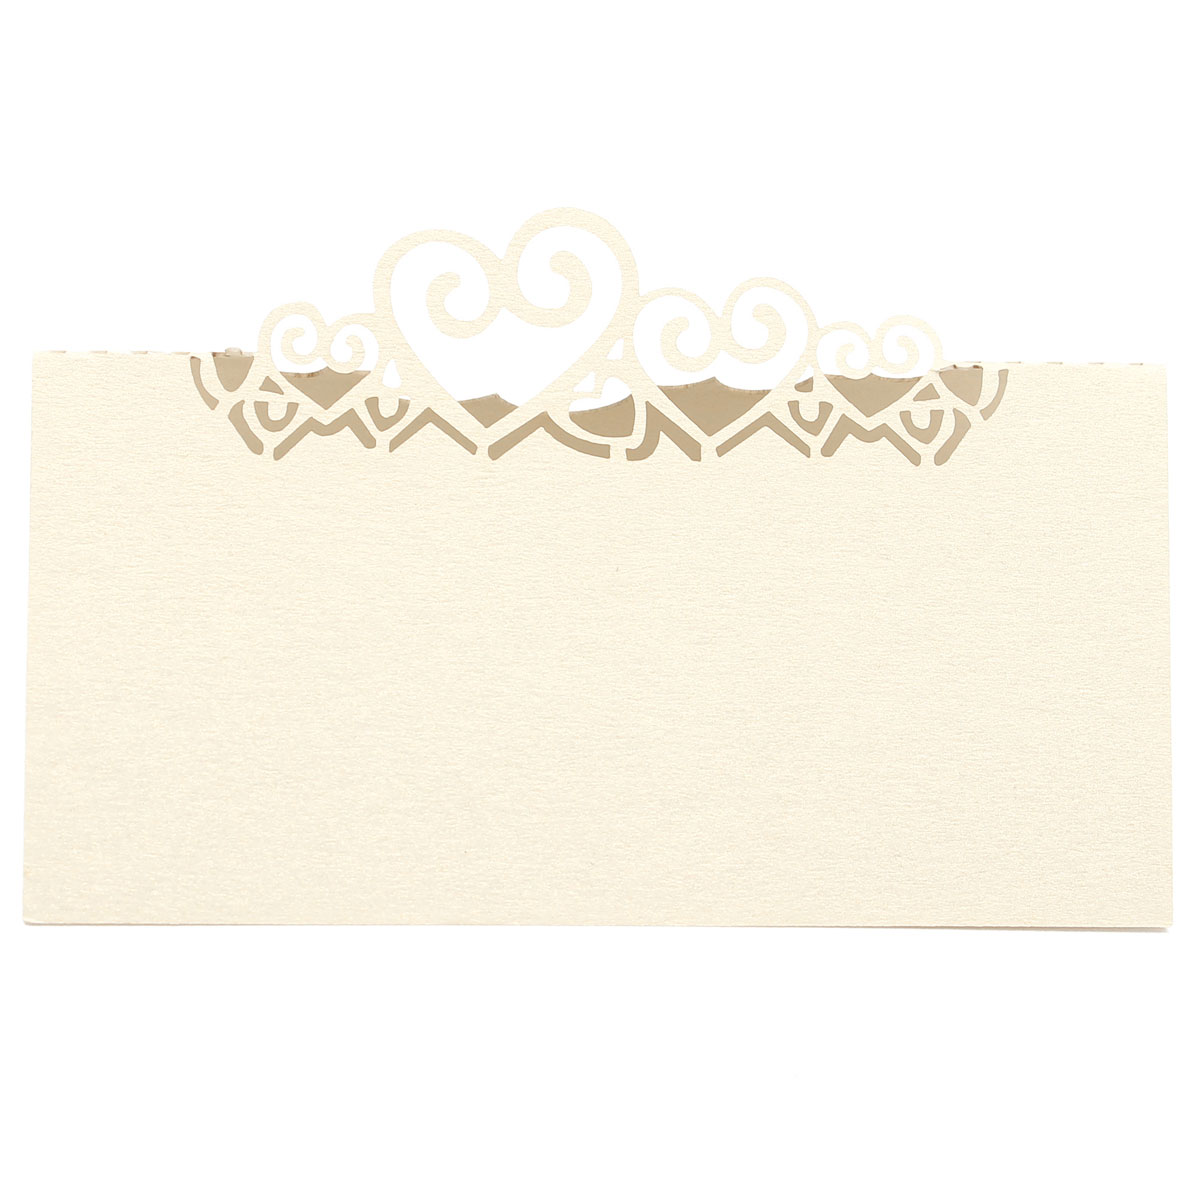 10Pcs Laser Cut Double Heart Table Name Place Cards White Ivory Wedding Party Accessories